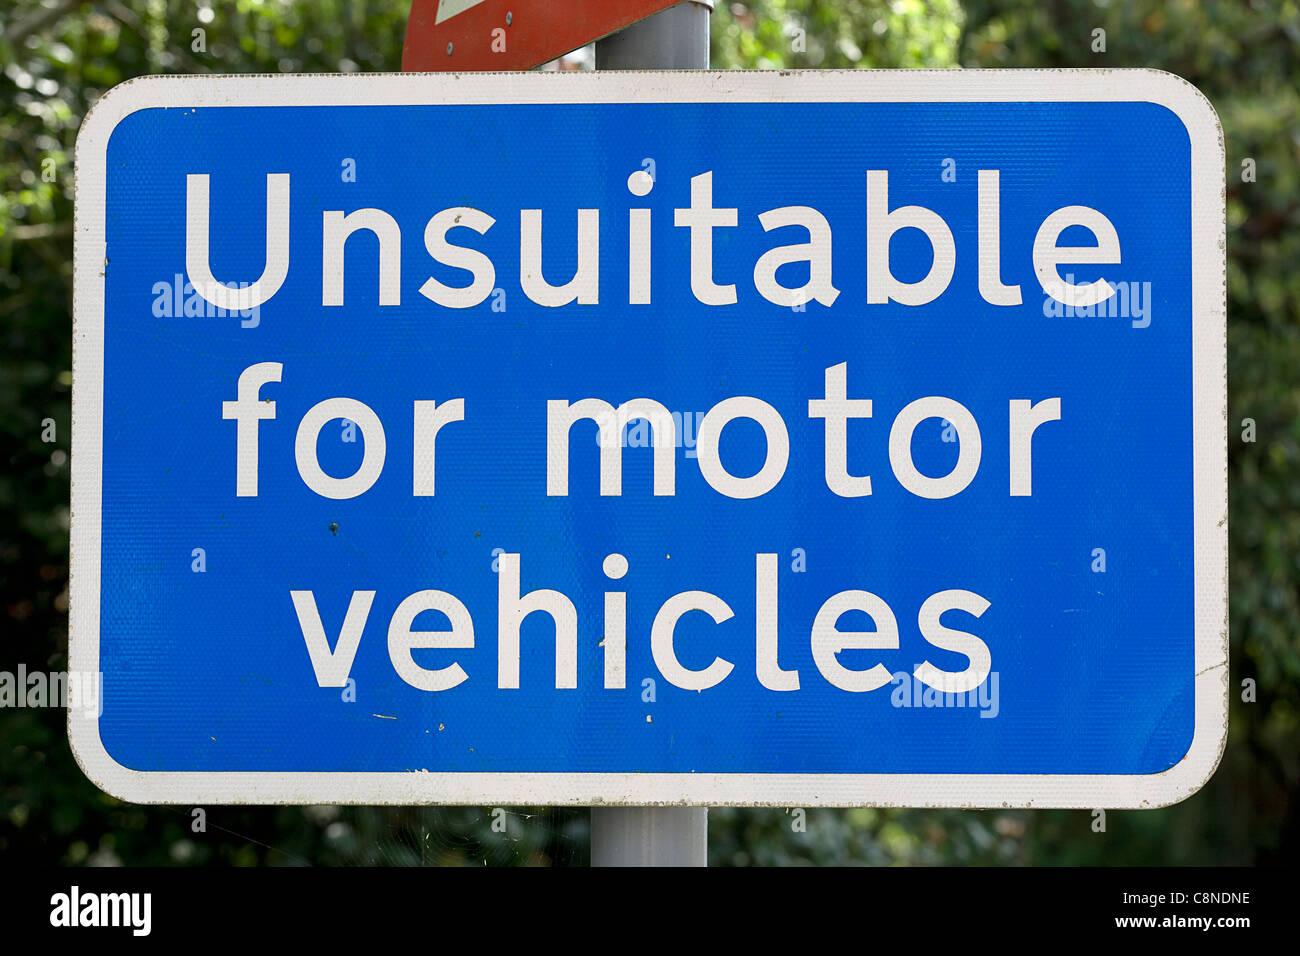 England, Unsuitable for motor vehicles sign - Stock Image